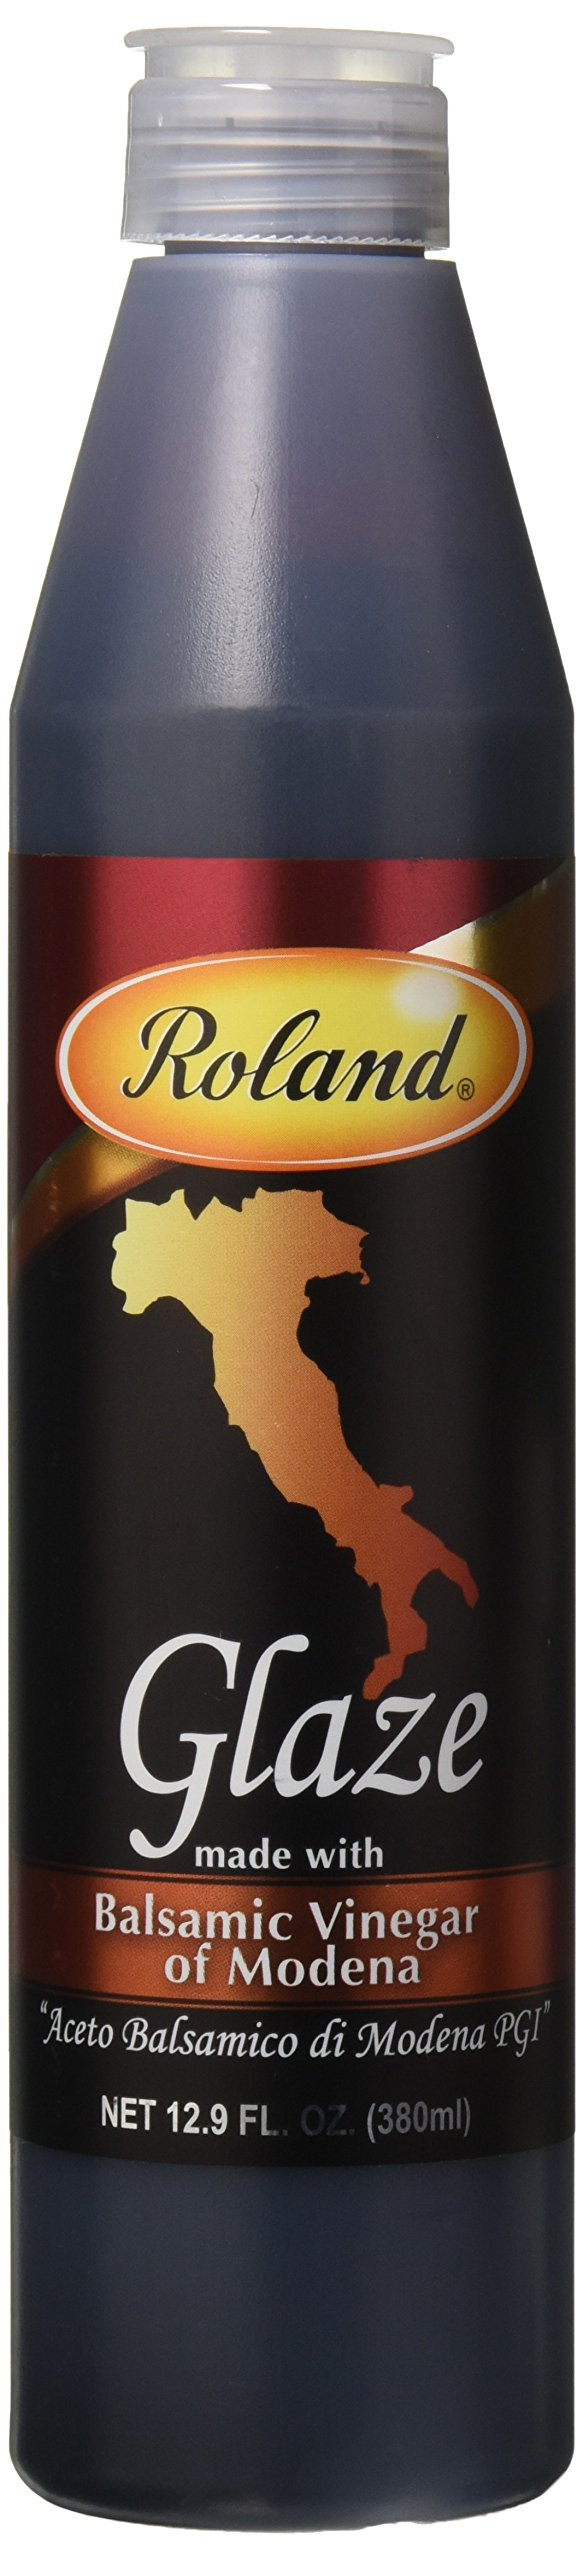 Roland Foods Balsamic Glaze, 12.9 Ounce 1 Imagine exploring the world's great food markets-Seattle's pike place, la boqueria in Barcelona, the borough market in London. Discovering unique and truly